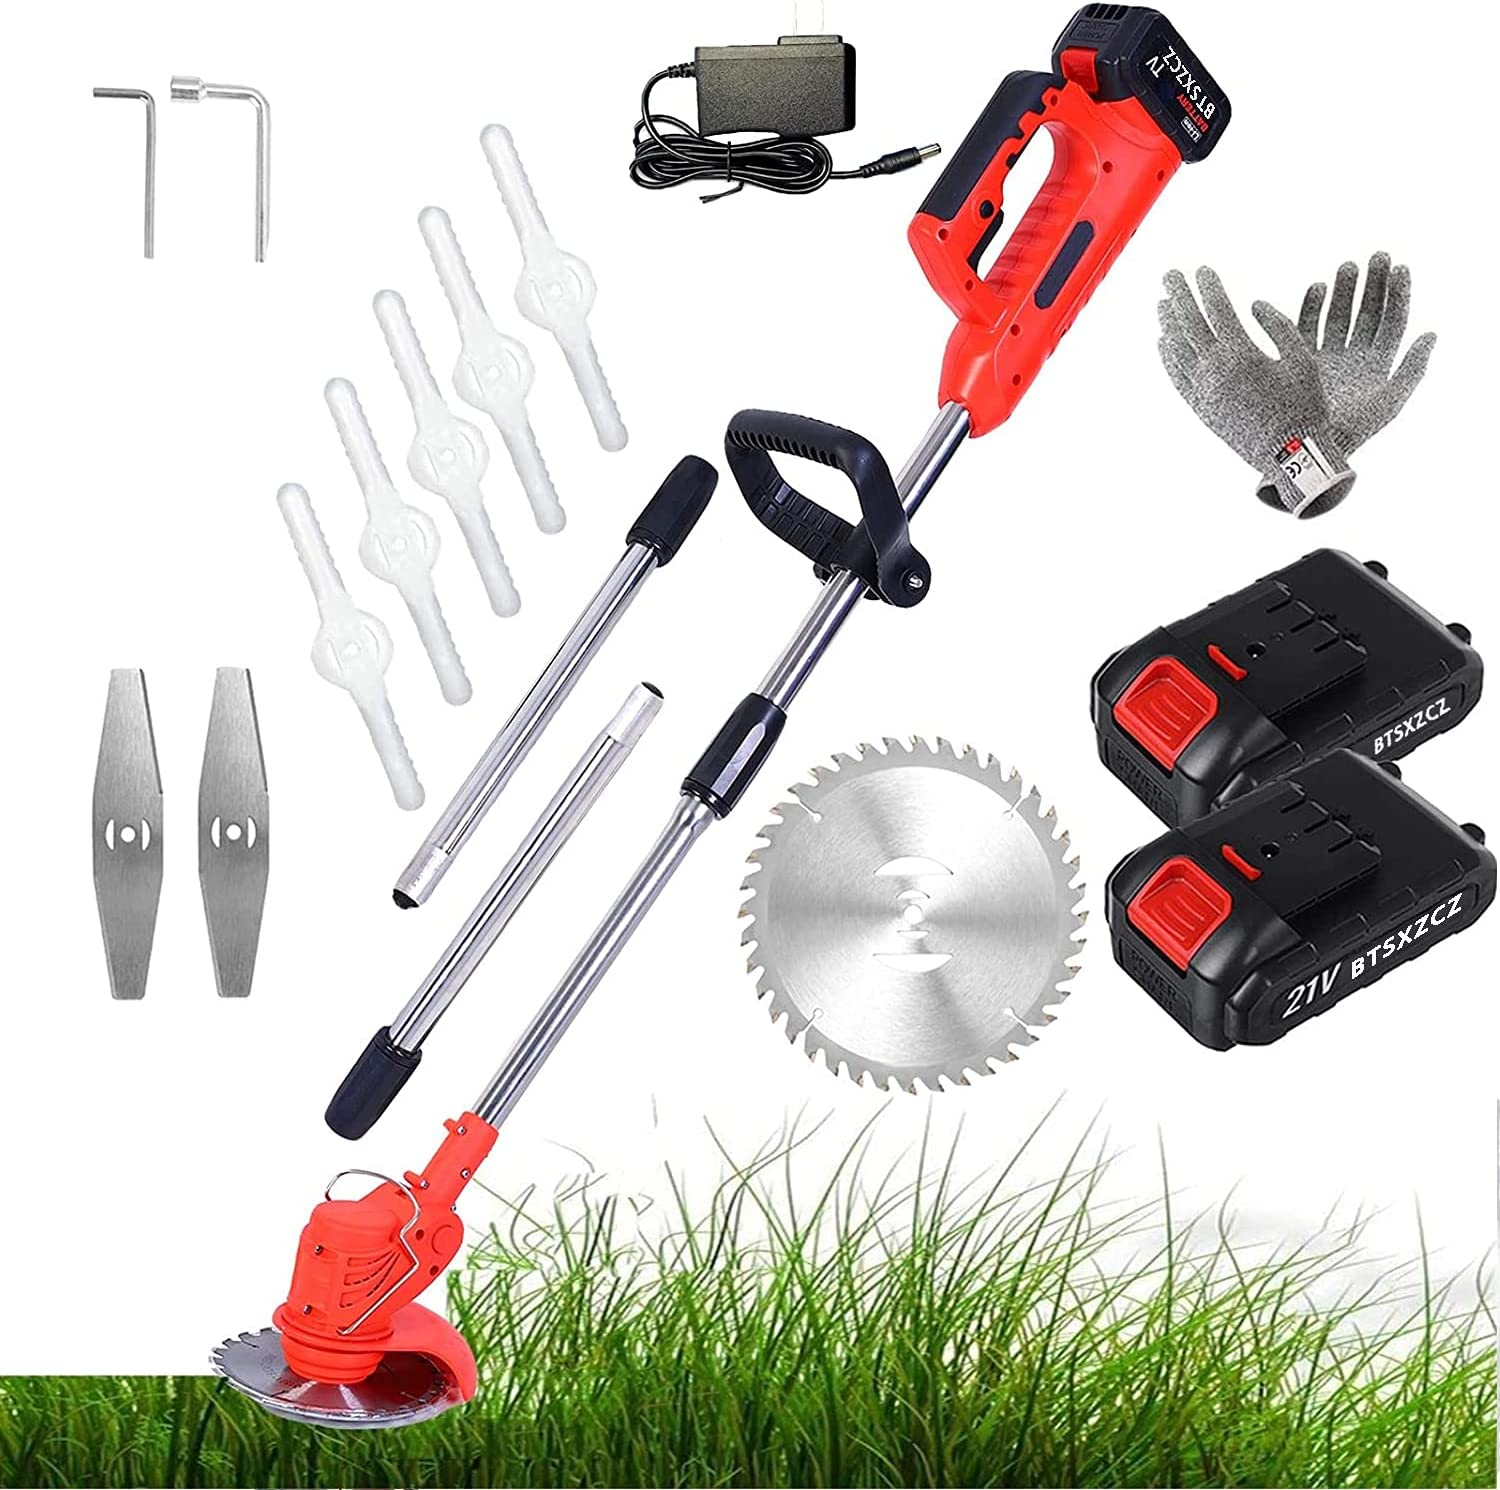 TIANMIAOTIAN Lawn Grass Cutting Machine Lengthen 90-160cm Stringless TrimmerElectricRemovable Cordless Grass Trimmers 21V Battery Powered8 Blades Garden Lawn Edger Trimmer36tv